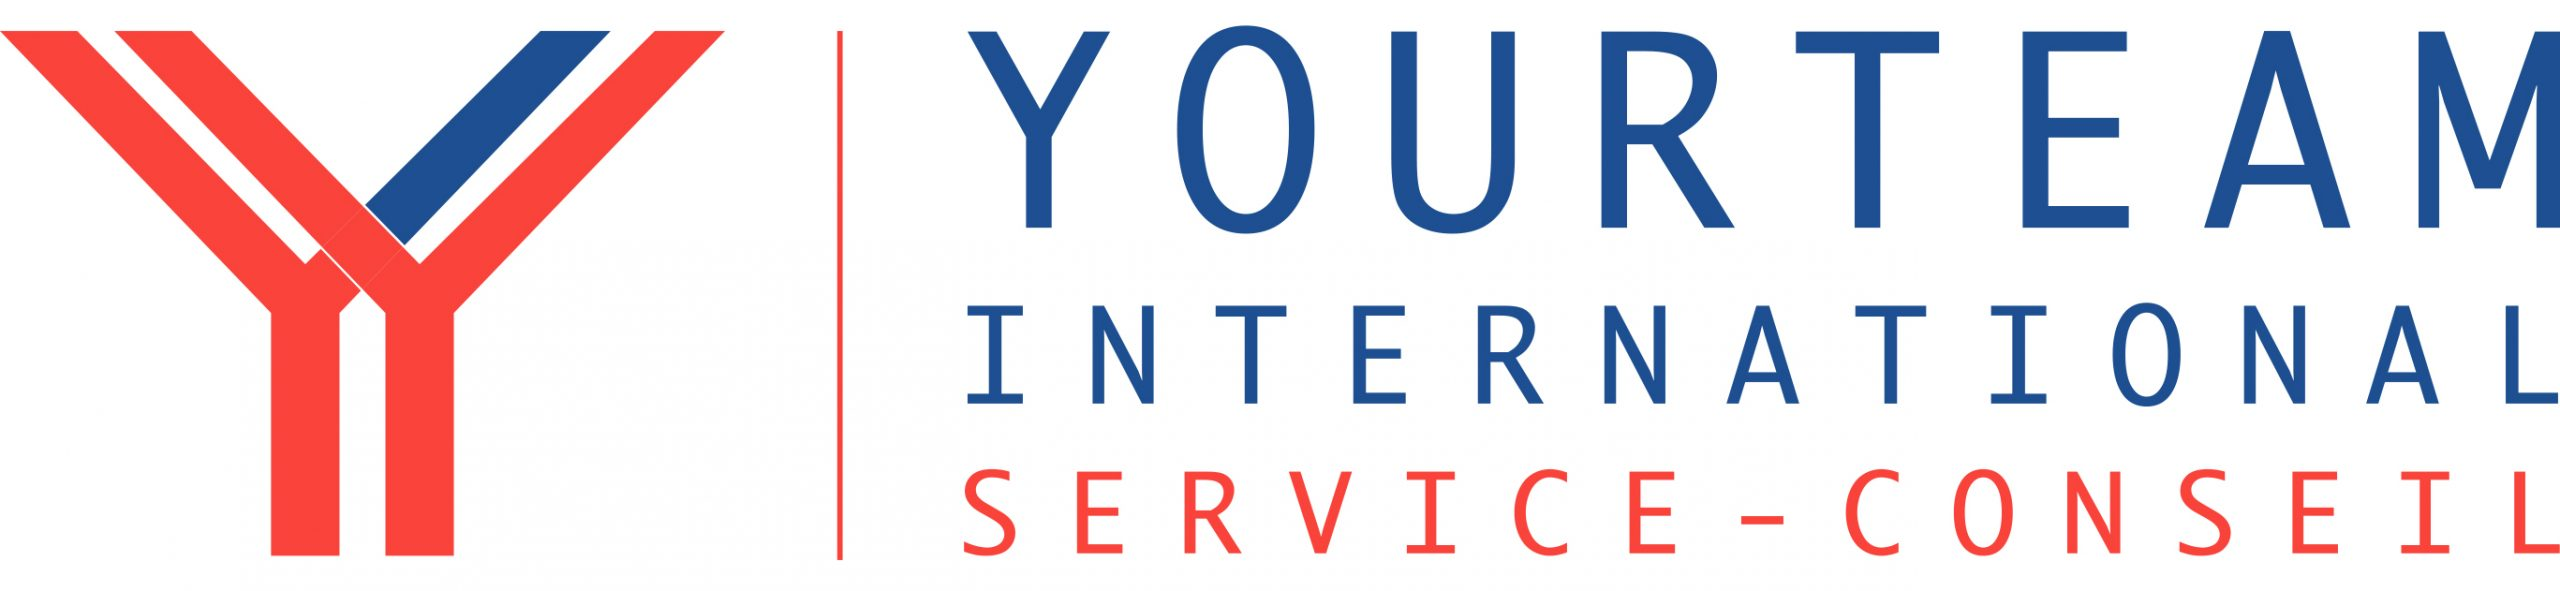 YourTeam International Consulting Service inc.